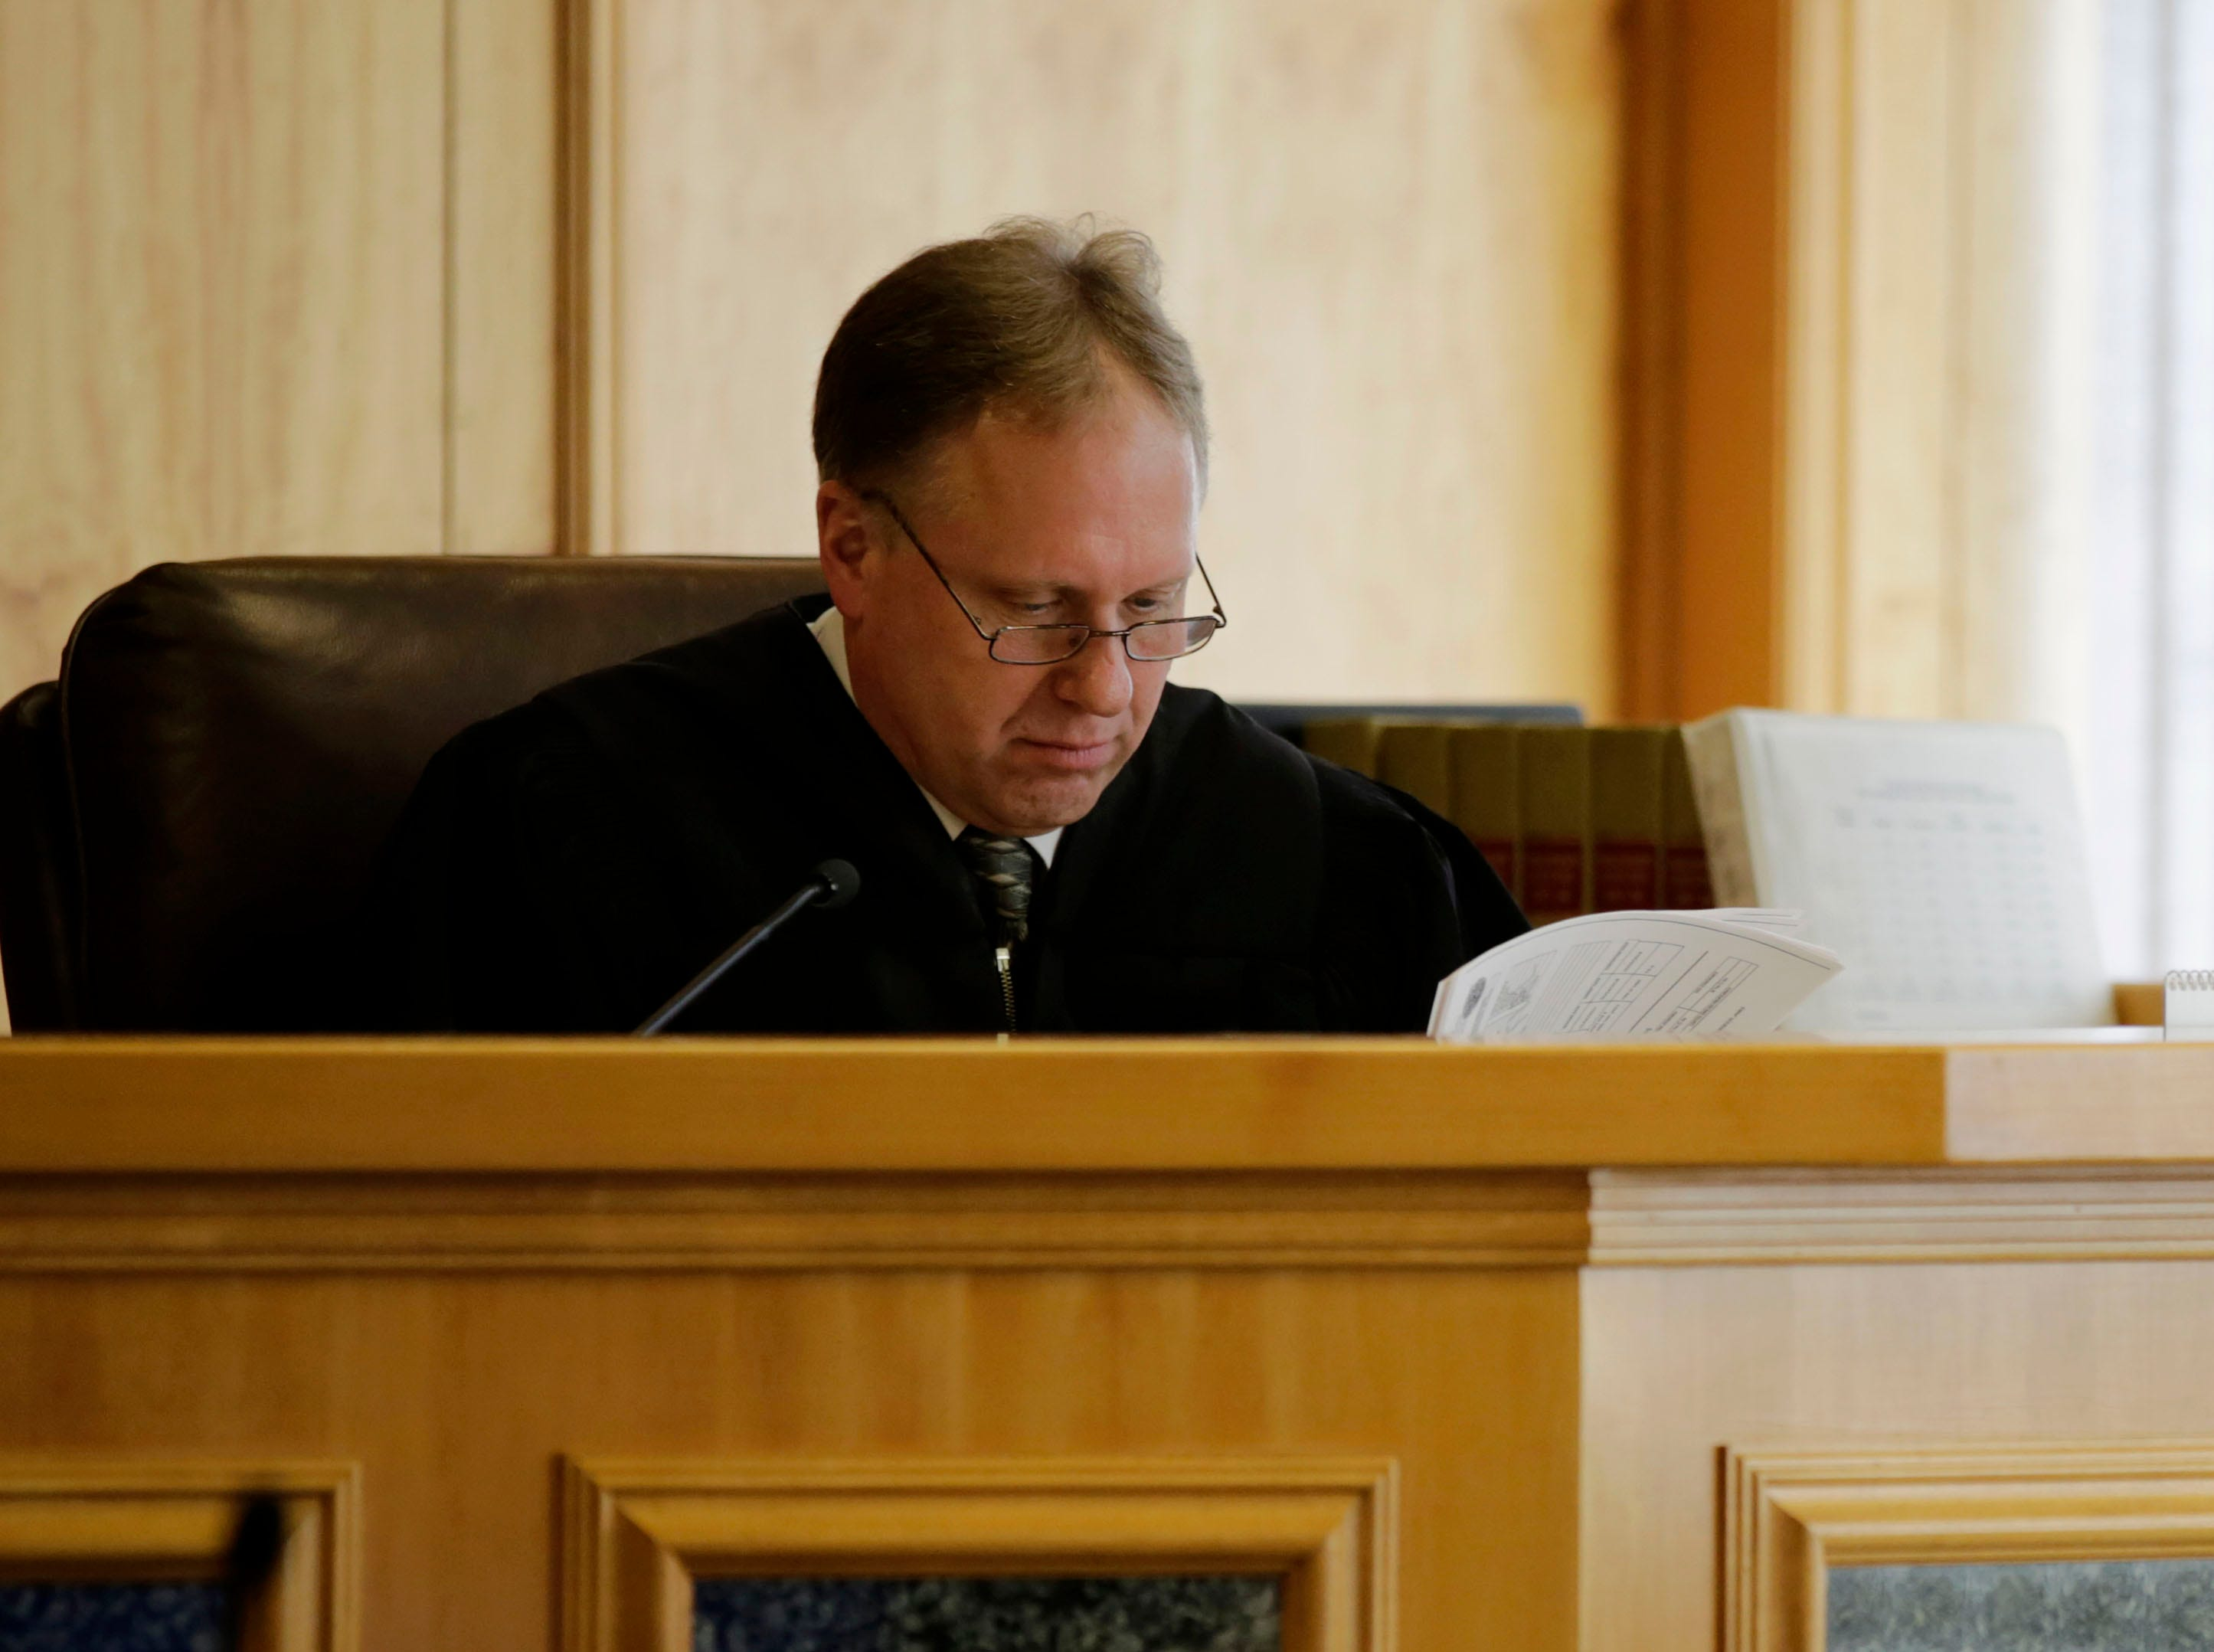 Circuit Court Judge Todd Wolf reviews his notes while listening to testimony during a sentencing hearing for James Georgeson on Friday, December 14, 2018, at the Wood County courthouse in Wisconsin Rapids, Wis.Tork Mason/USA TODAY NETWORK-Wisconsin